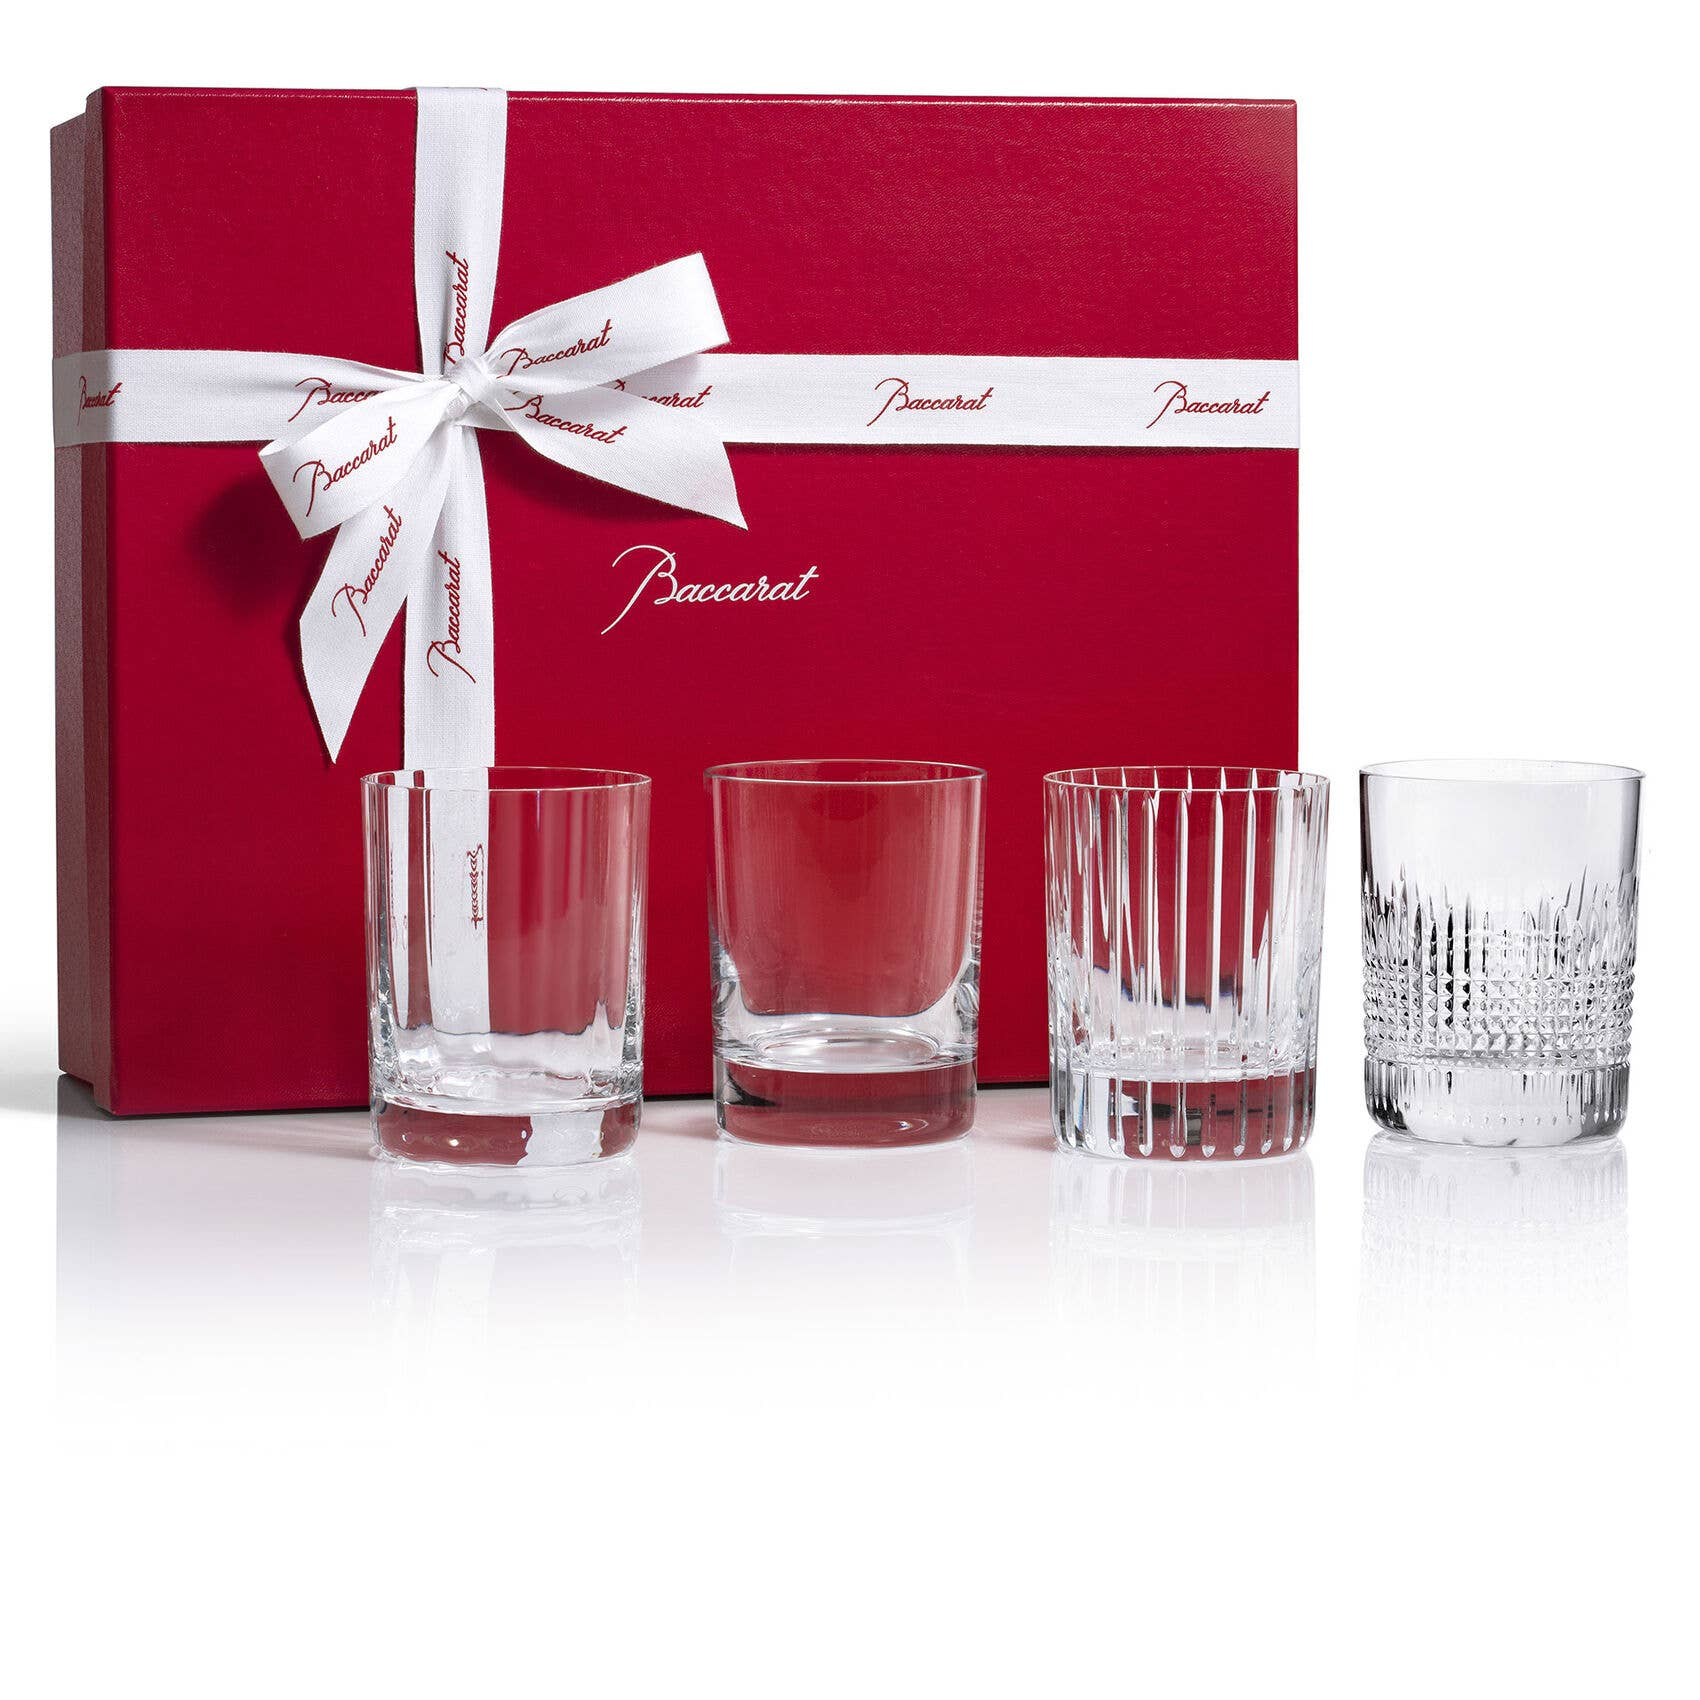 Baccarat Four Elements Tumbler representing air, water, fire and earth